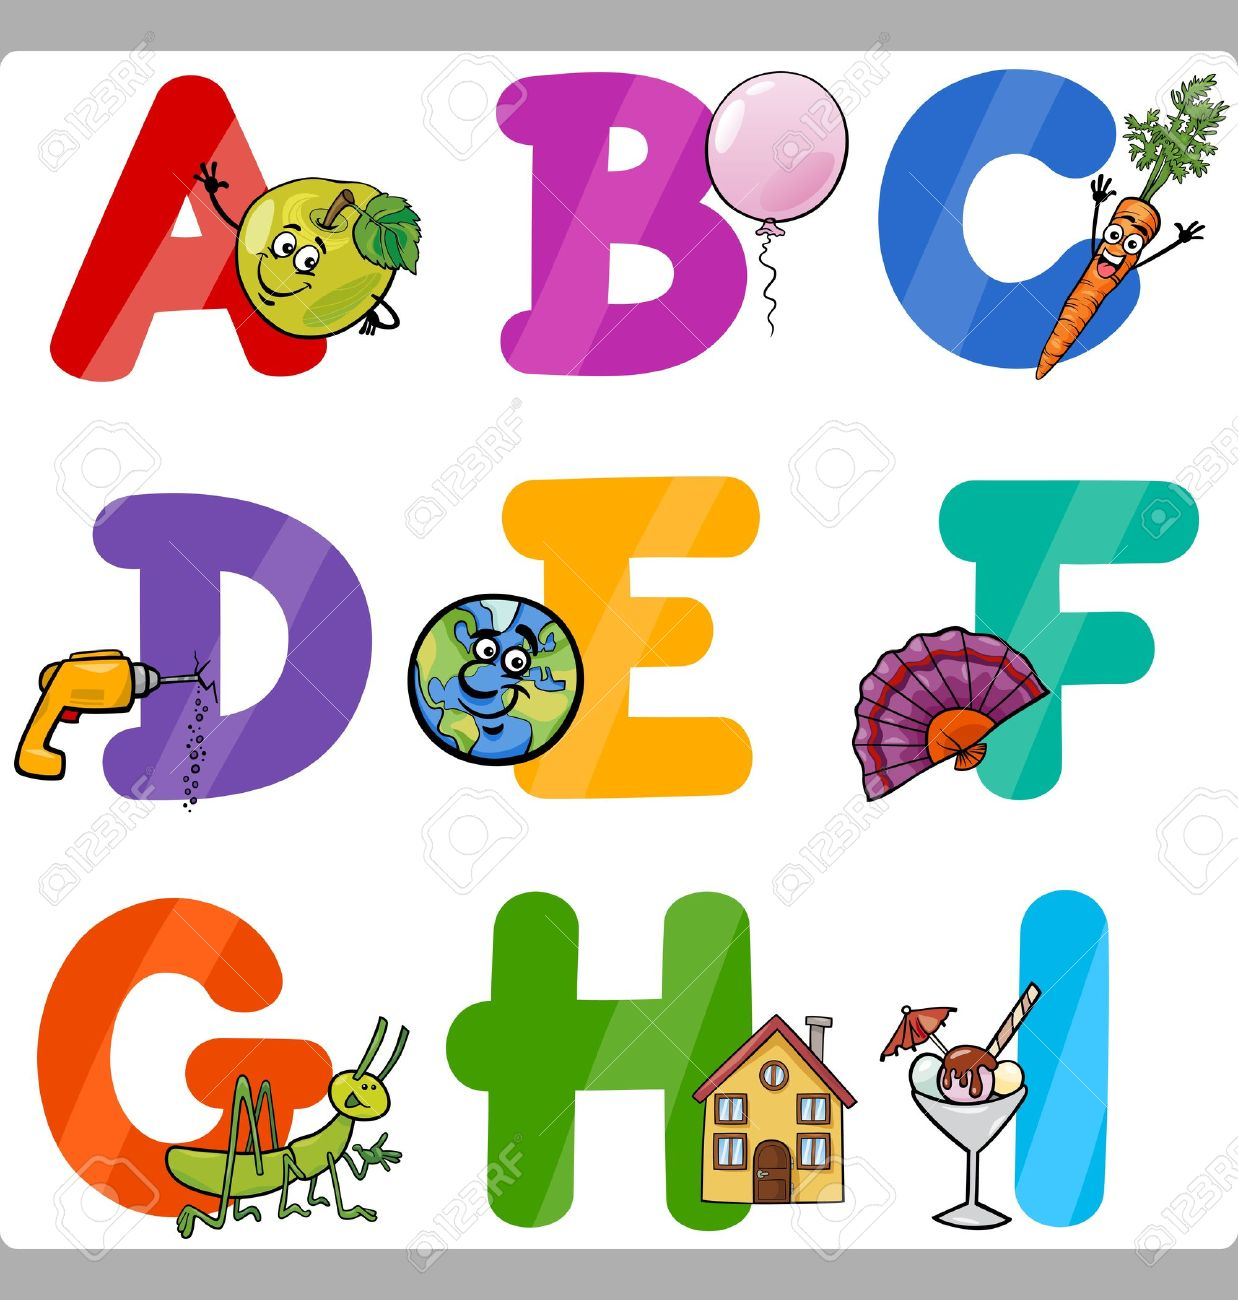 Cartoon Illustration Of Funny Capital Letters Alphabet With.